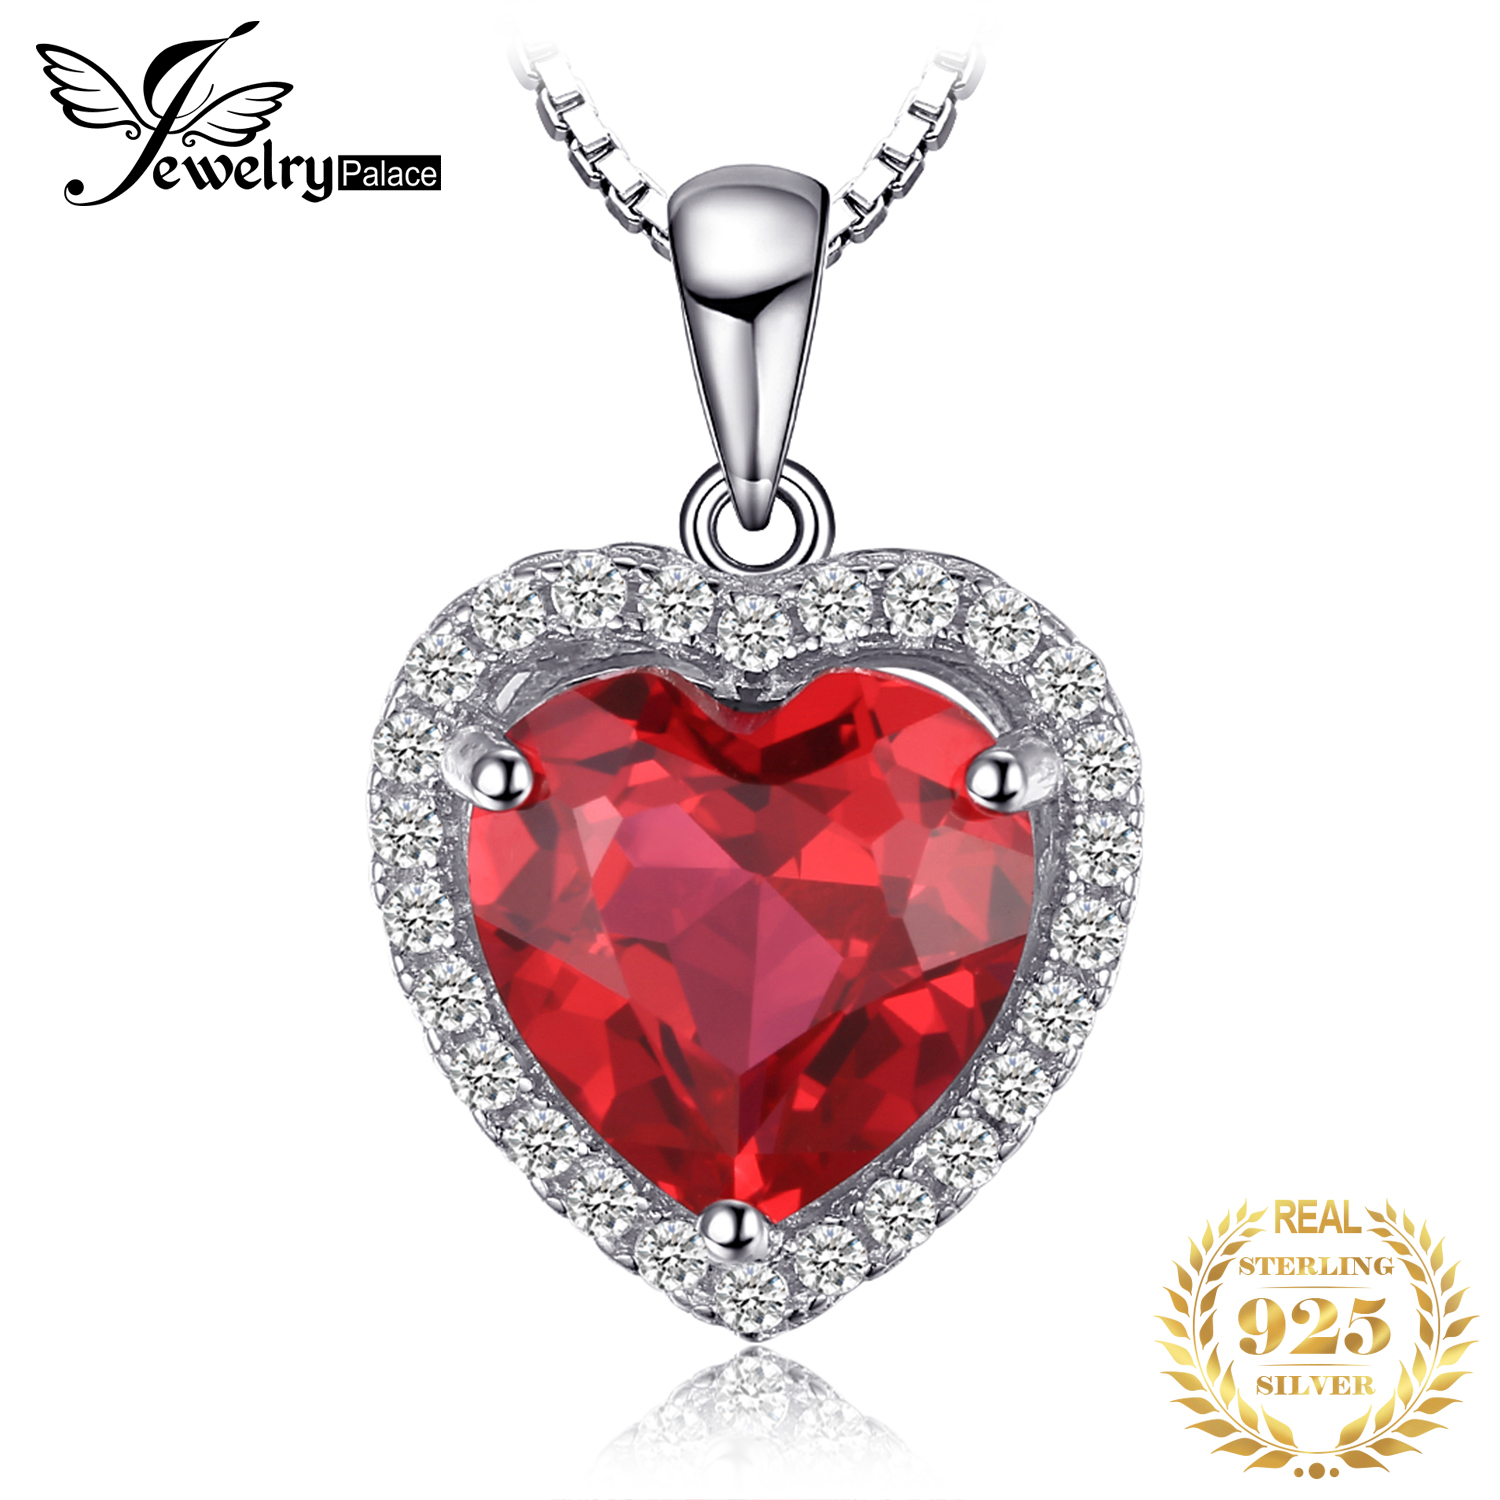 JPalace Heart Created Red Ruby Pendant Necklace 925 Sterling Silver Gemstones Choker Statement Necklace Women Without Chain